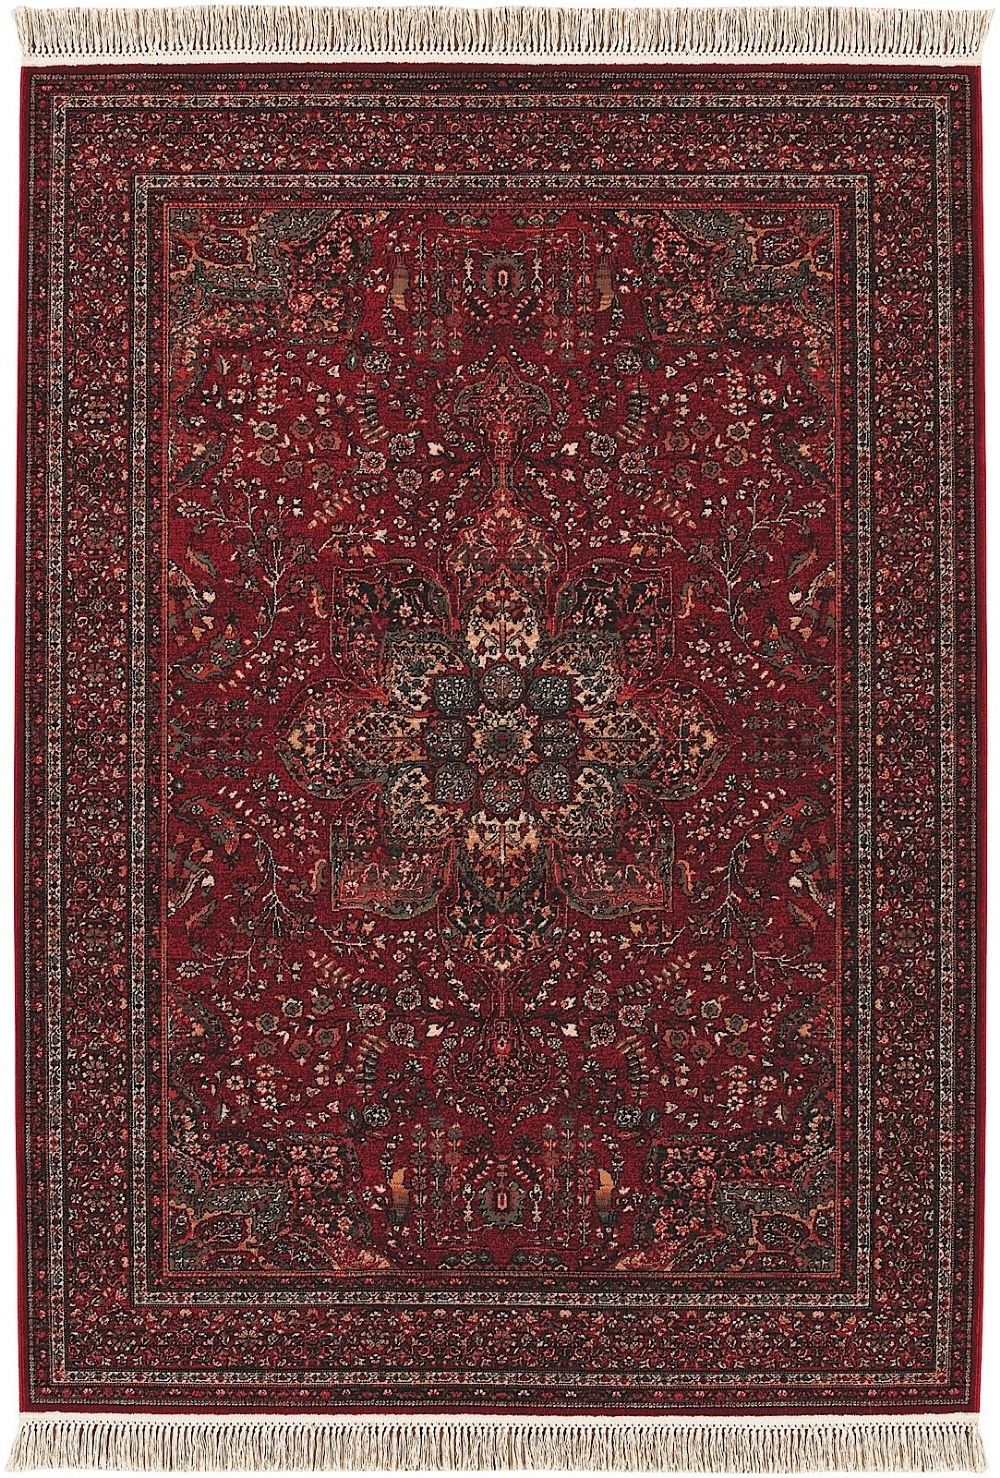 couristan kashimar transitional area rug collection